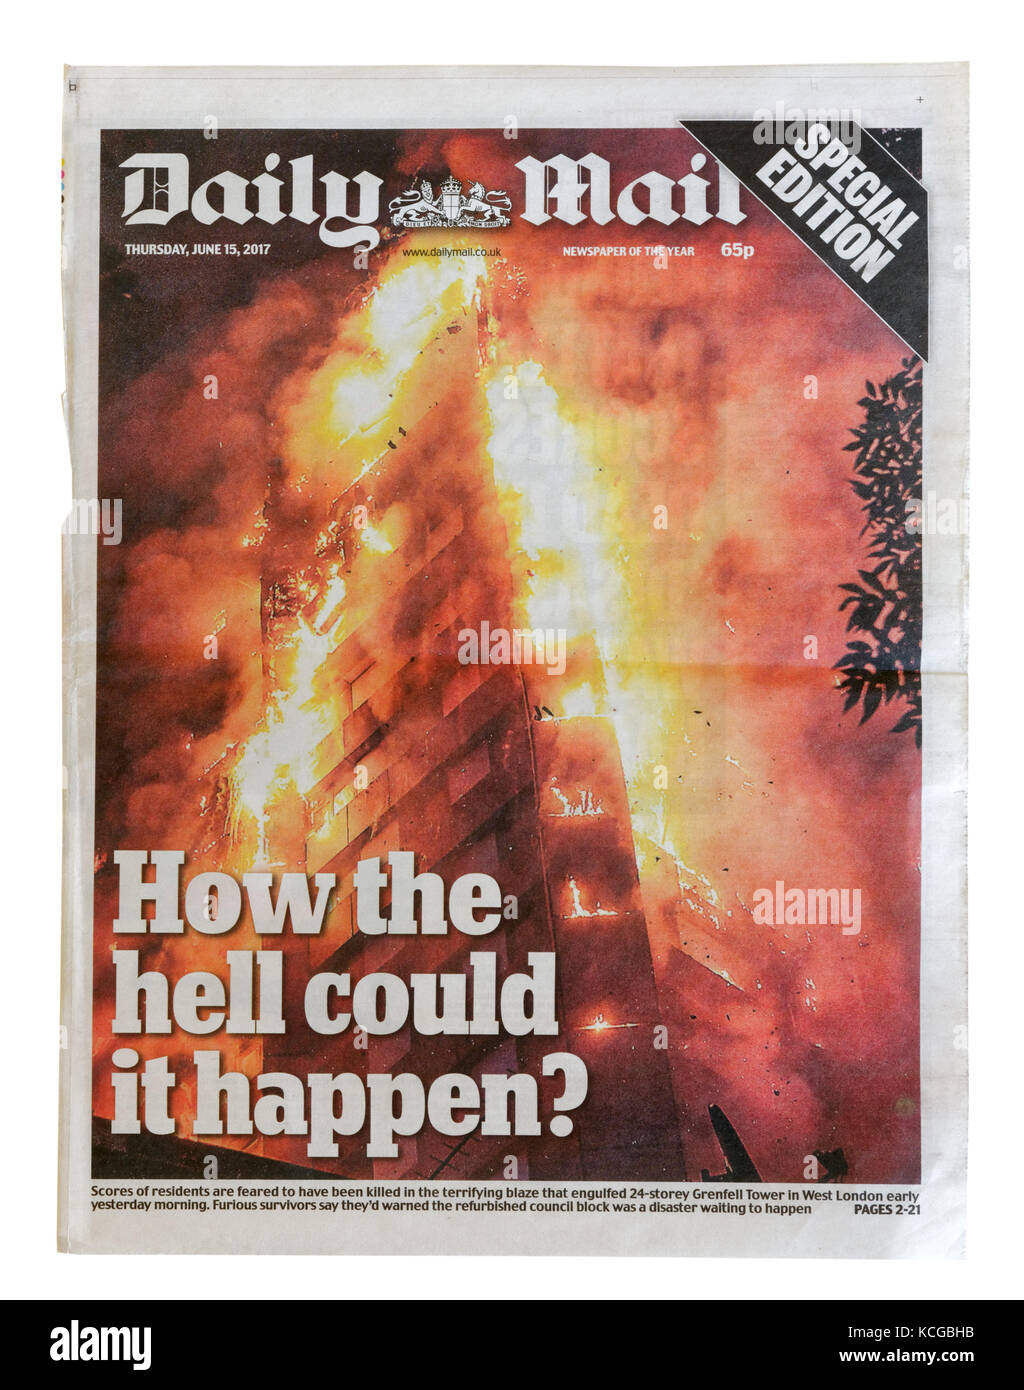 Daily Mail headline and coverage of the Grenfell Tower fire in London, England in which an estimated 80 people died - Stock Image